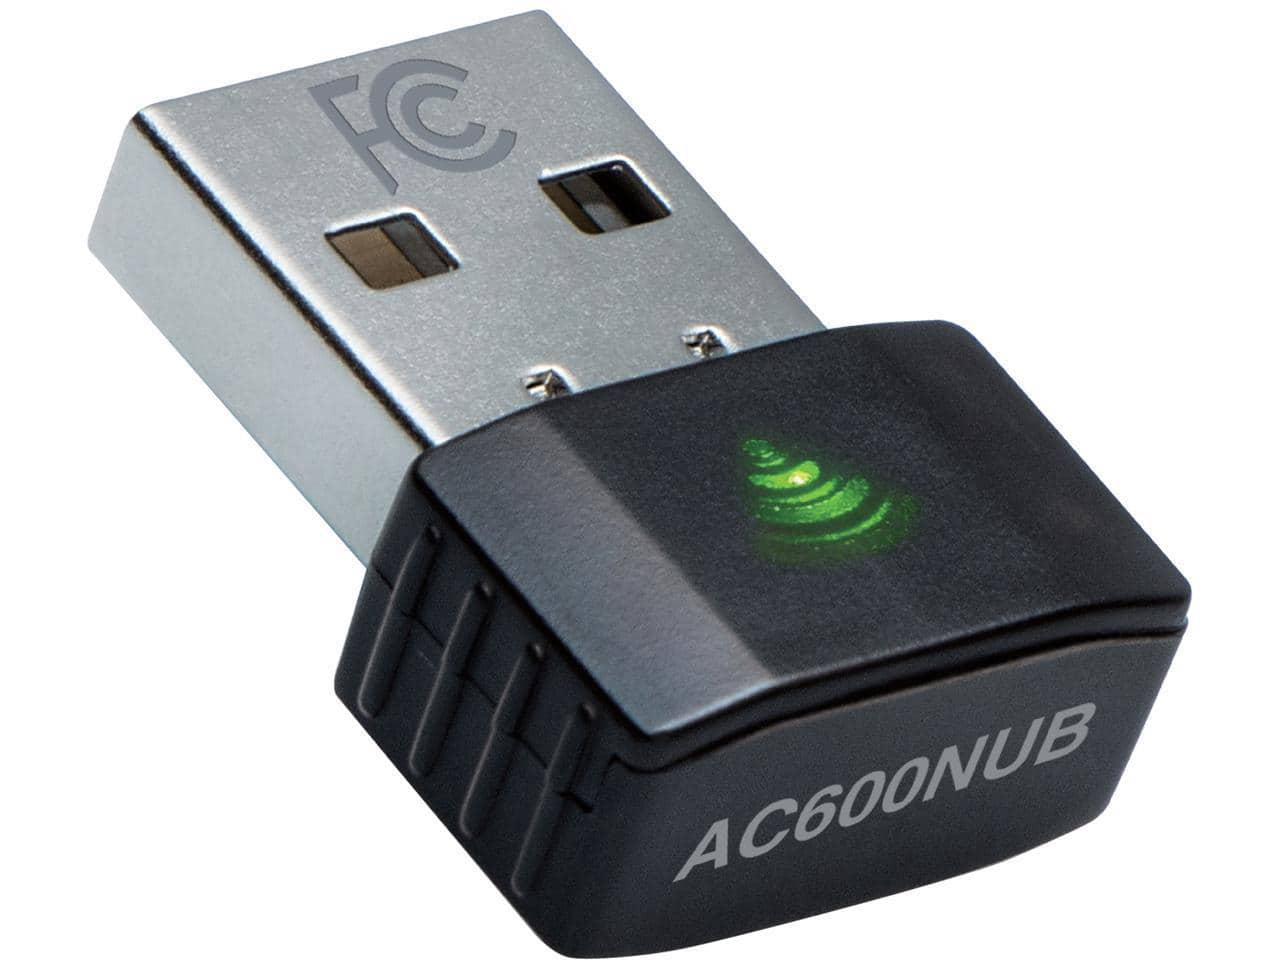 Rosewill RNX-AC600NUB AC600 Dual-Band USB Wireless Adapter for $5.99 AR + Free Ship @ Newegg